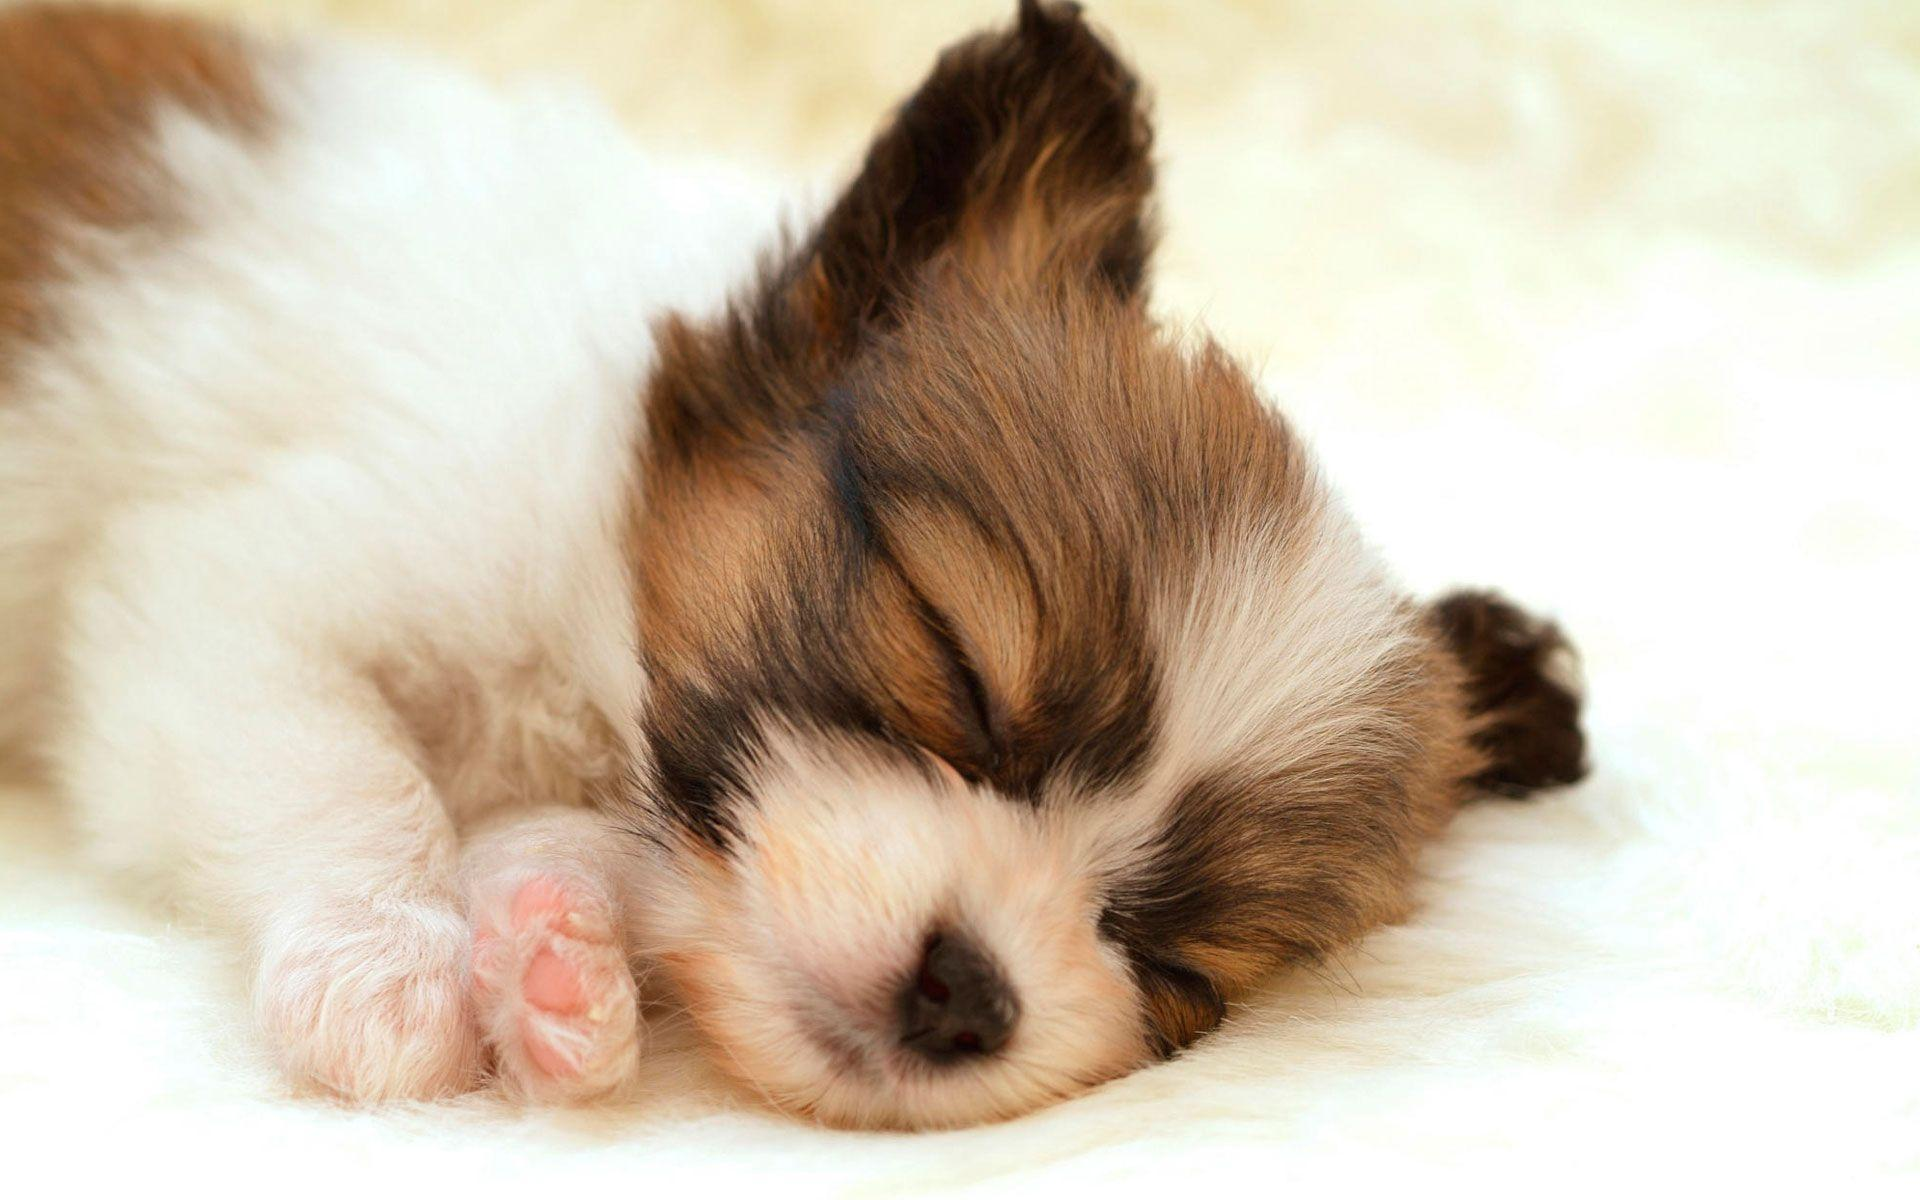 Cute Puppy Sleeping Wide wallpapers